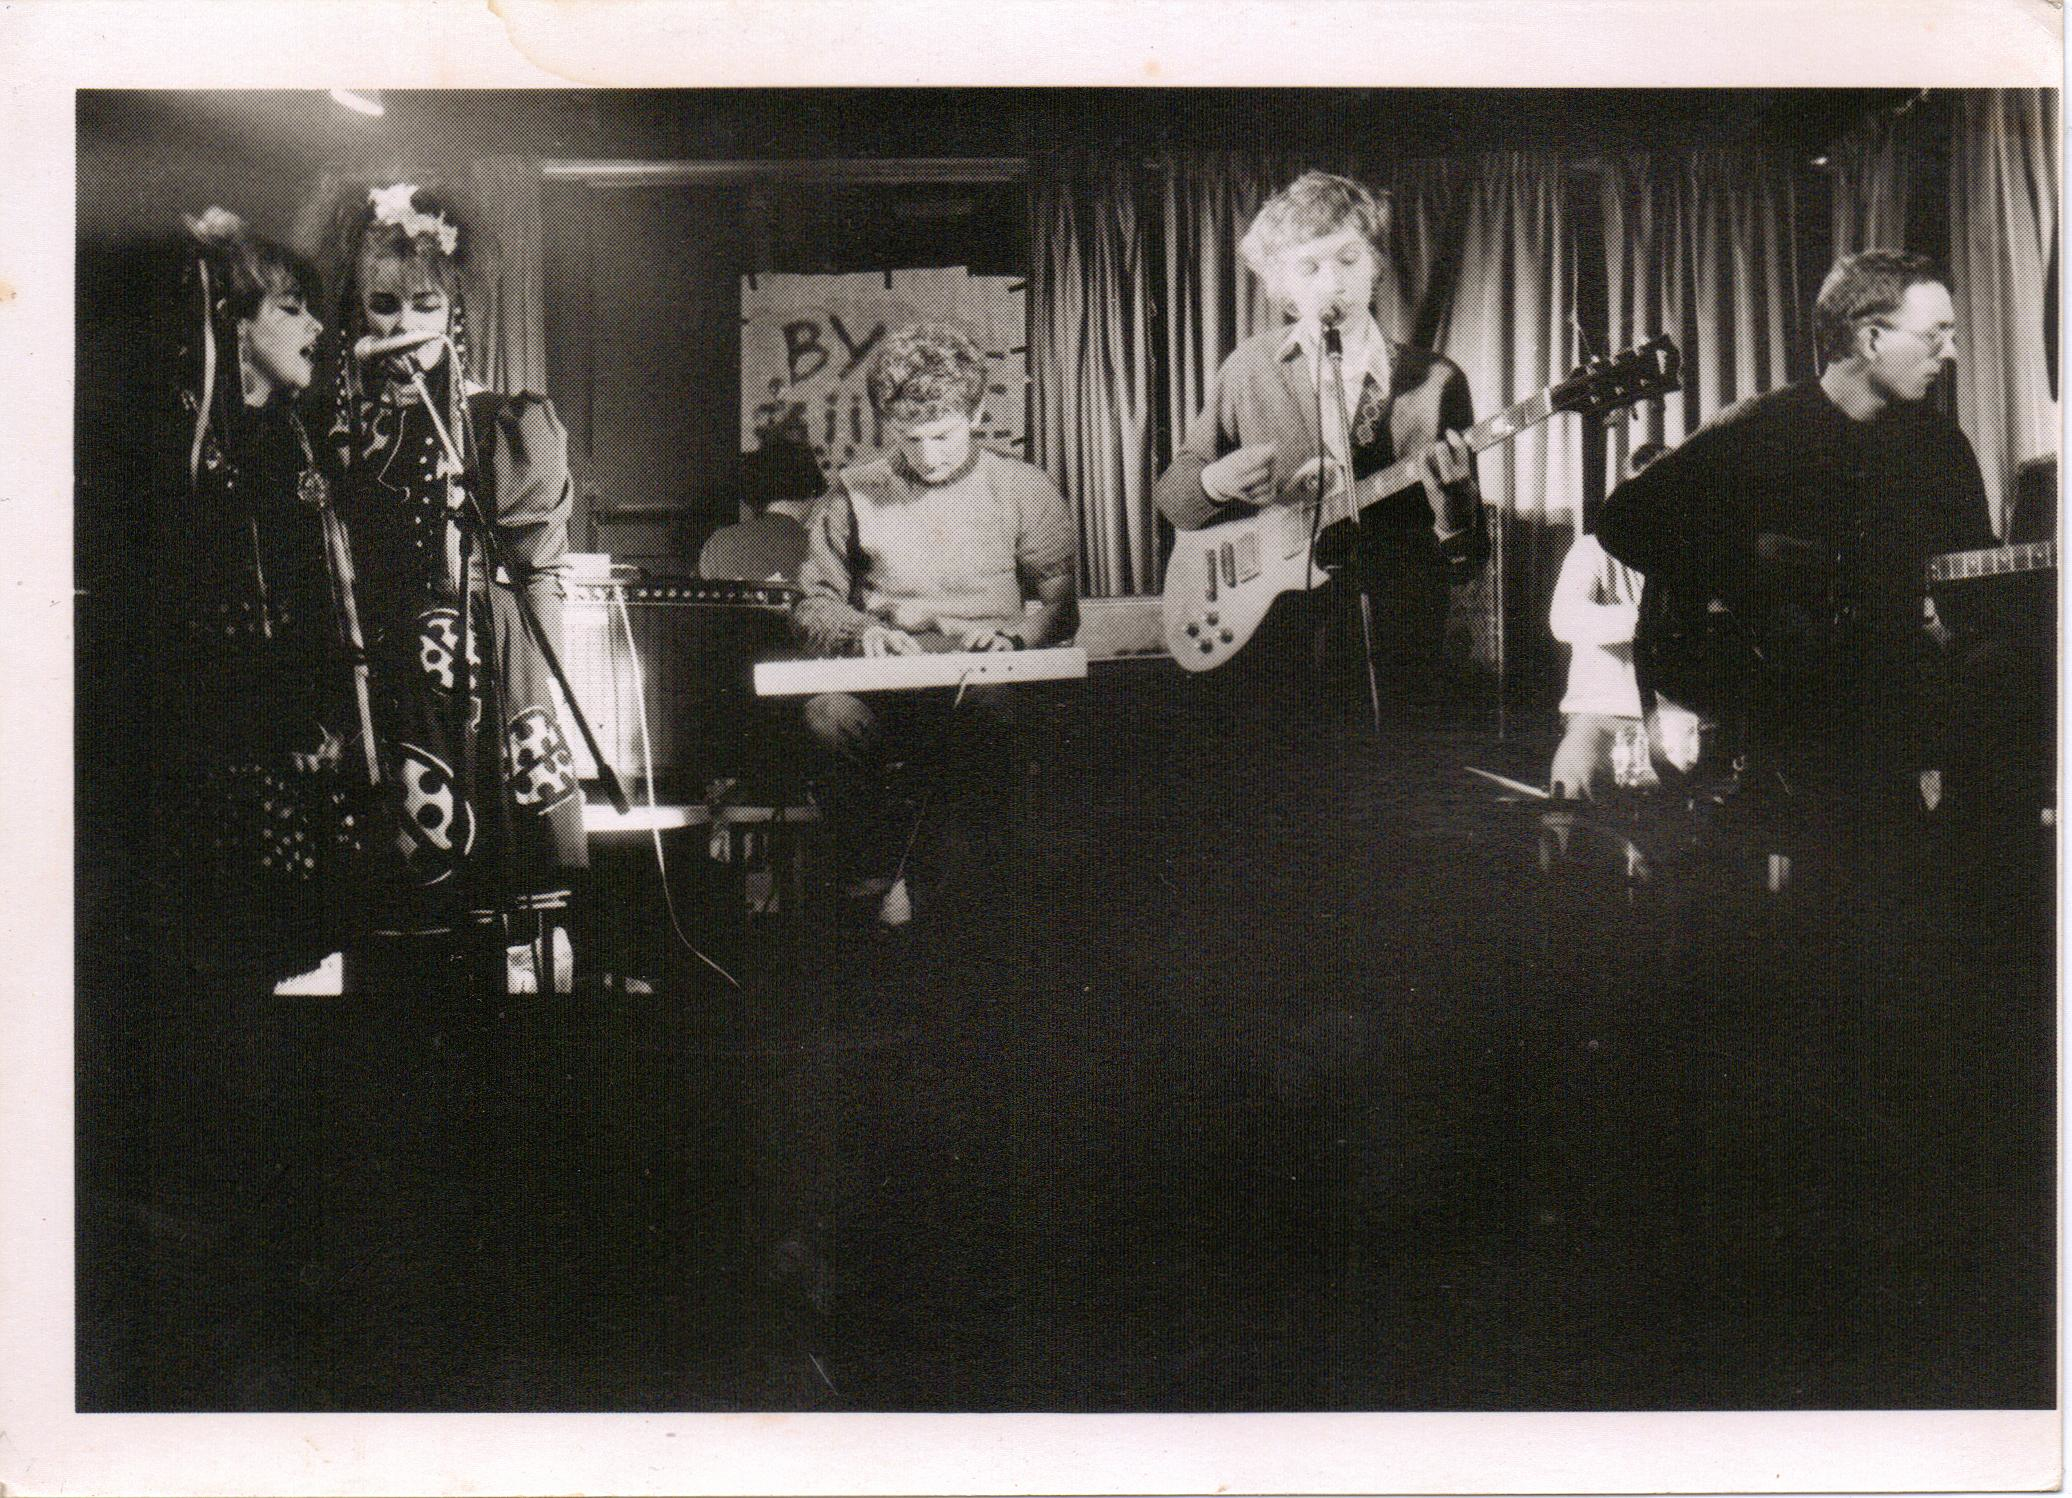 The Pastels (with Strawberry Switchblade on backing vocals), from 'A Scene In Between'. Image Courtesy of Sam Knee.